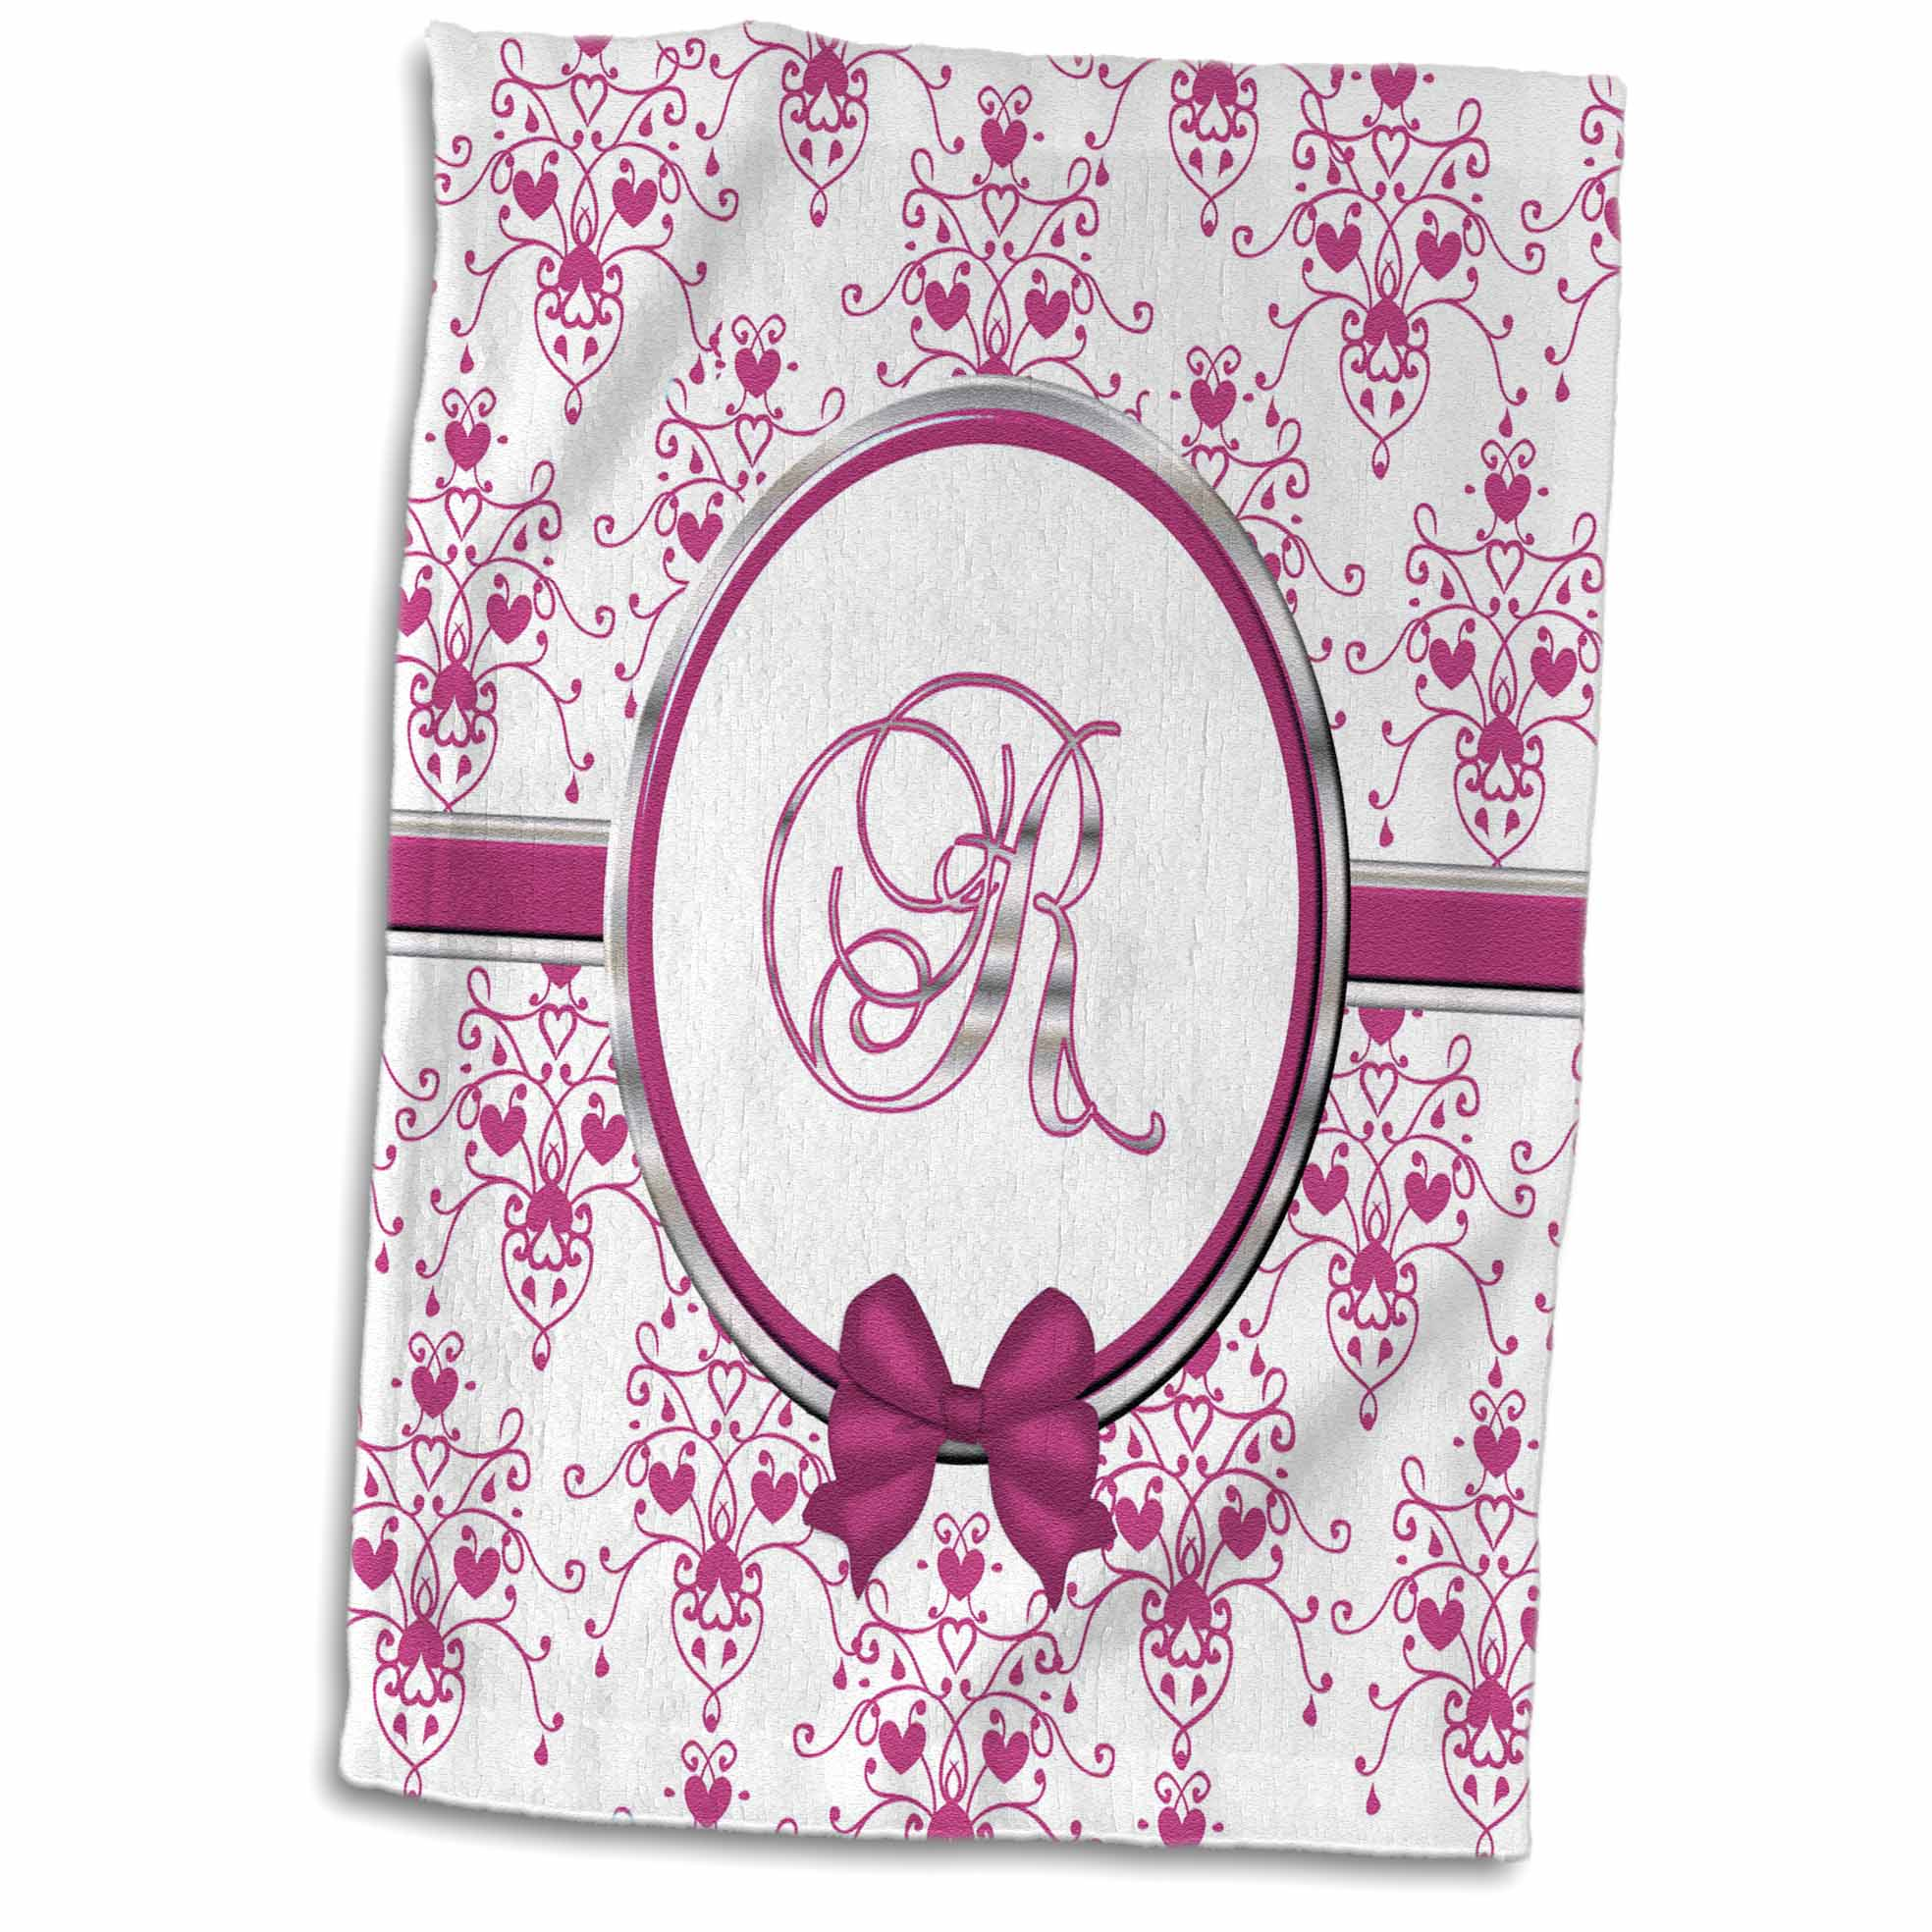 3dRose Elegant Pink and Silver Heart Damask Monogram Letter R - Towel, 15 by 22-inch